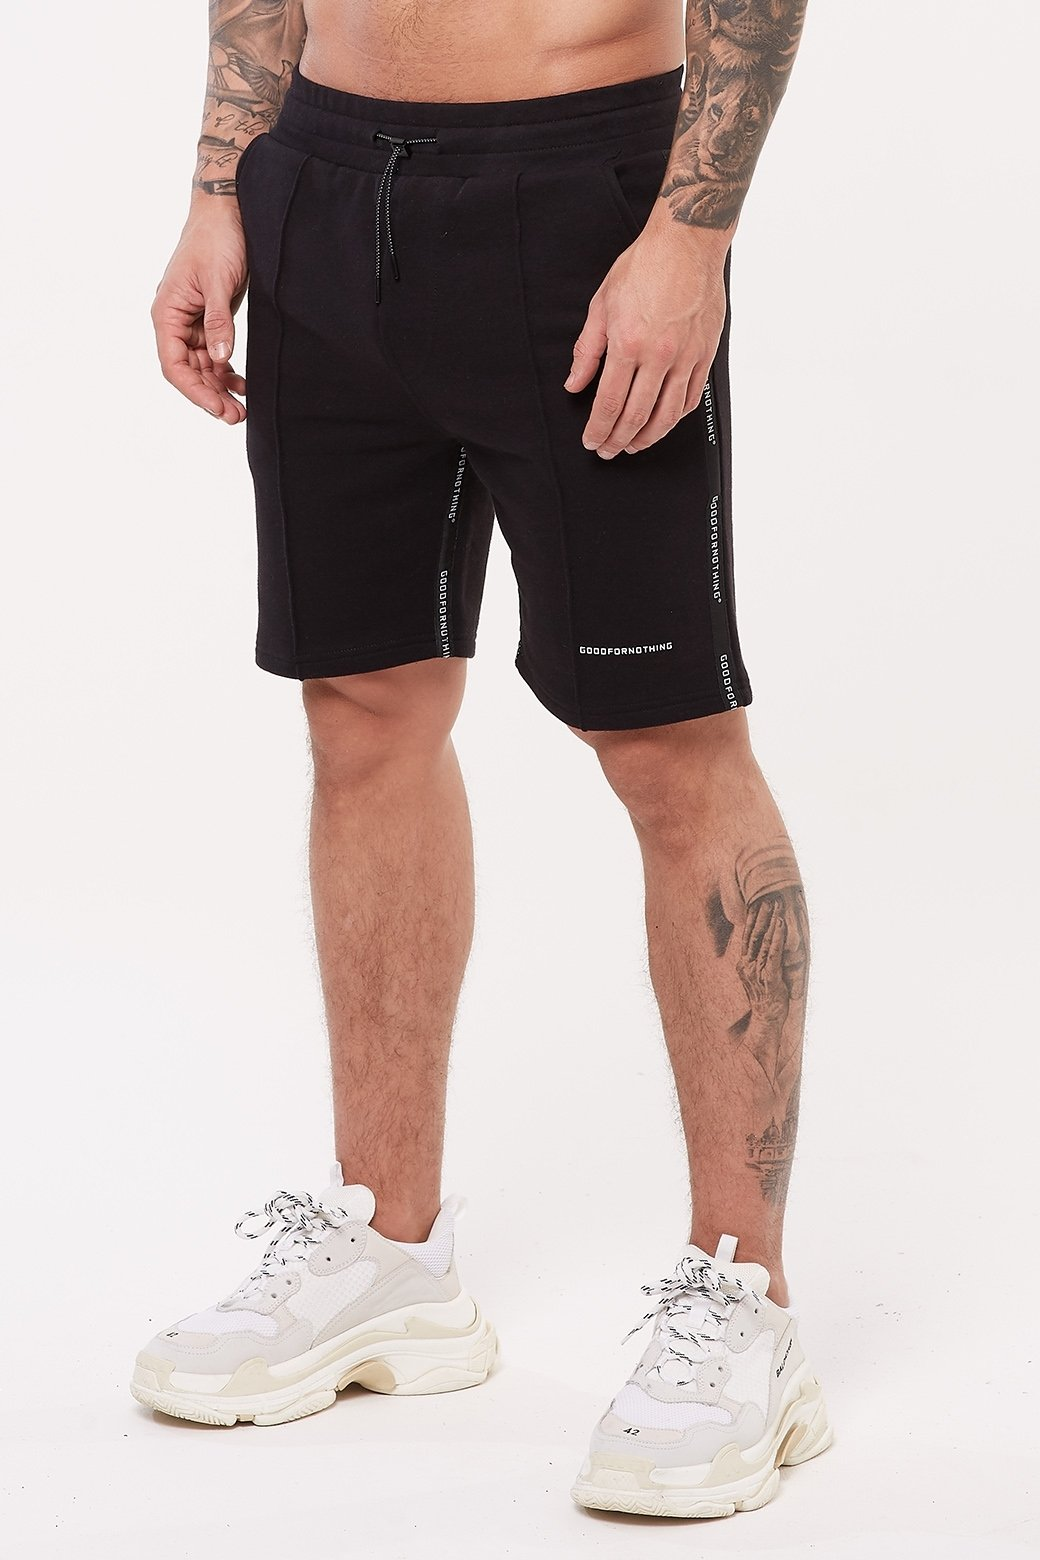 Future Black Shorts